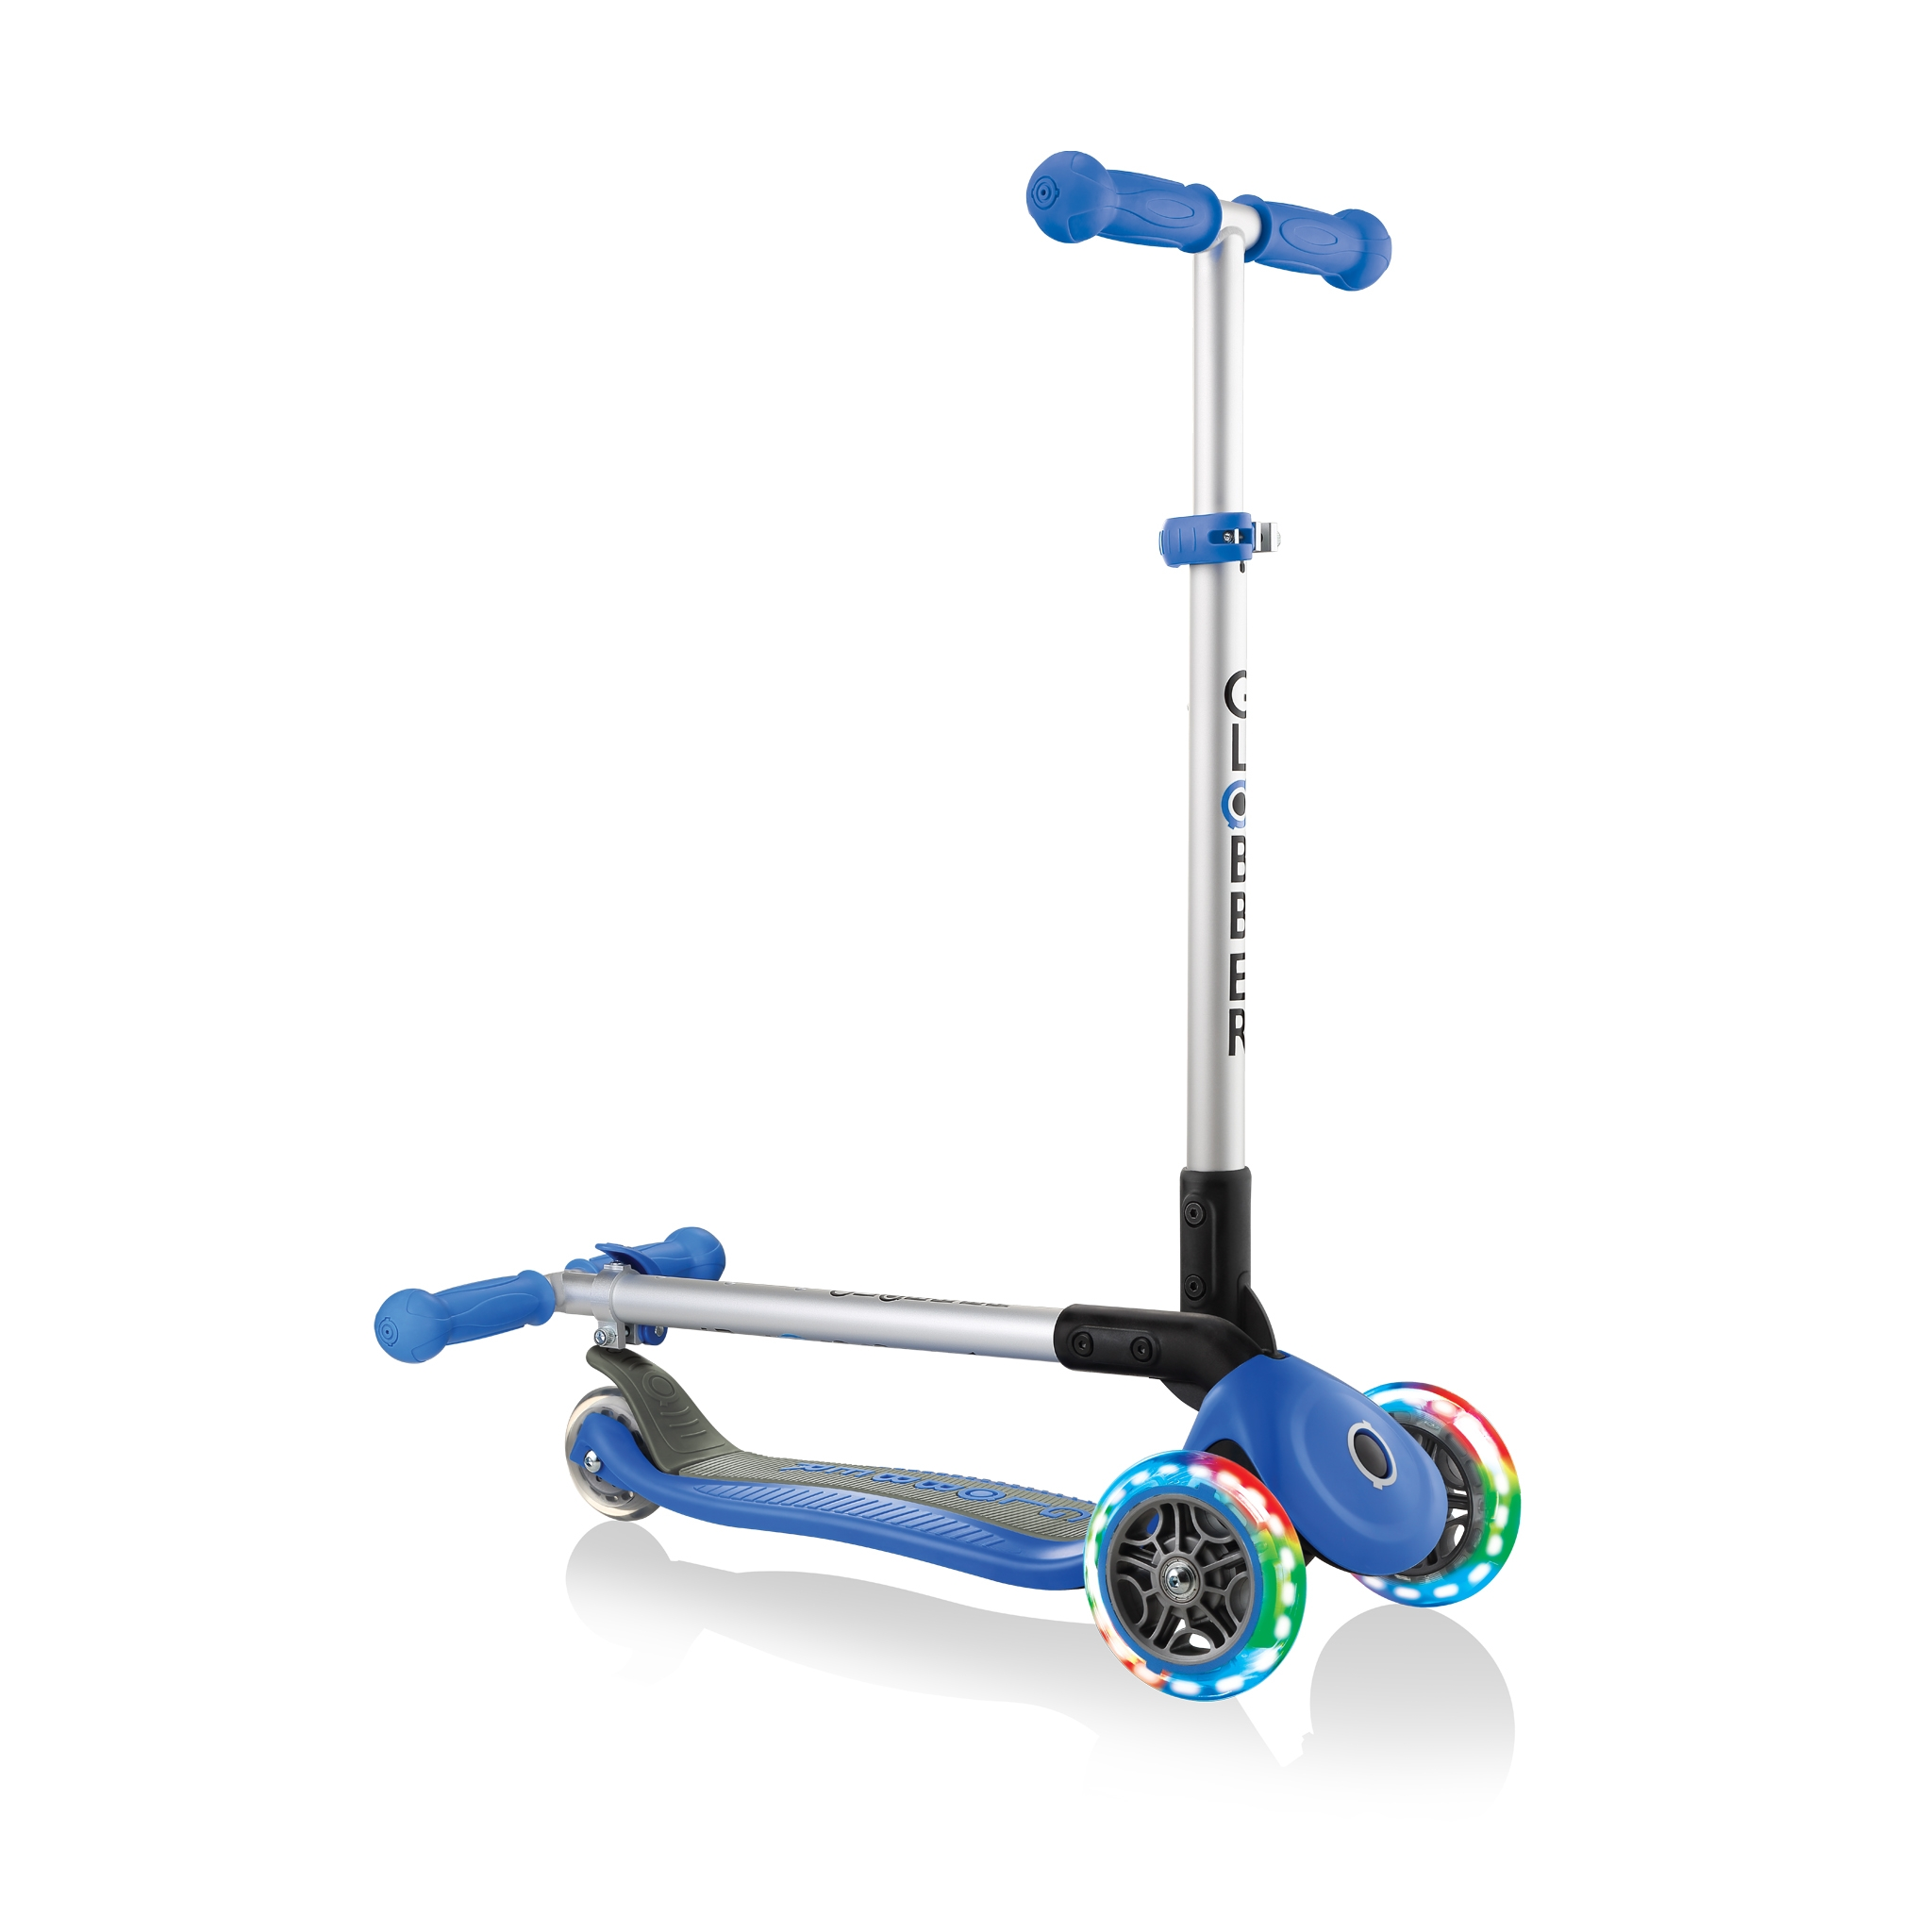 PRIMO-FOLDABLE-LIGHTS-3-wheel-fold-up-scooter-for-kids-navy-blue